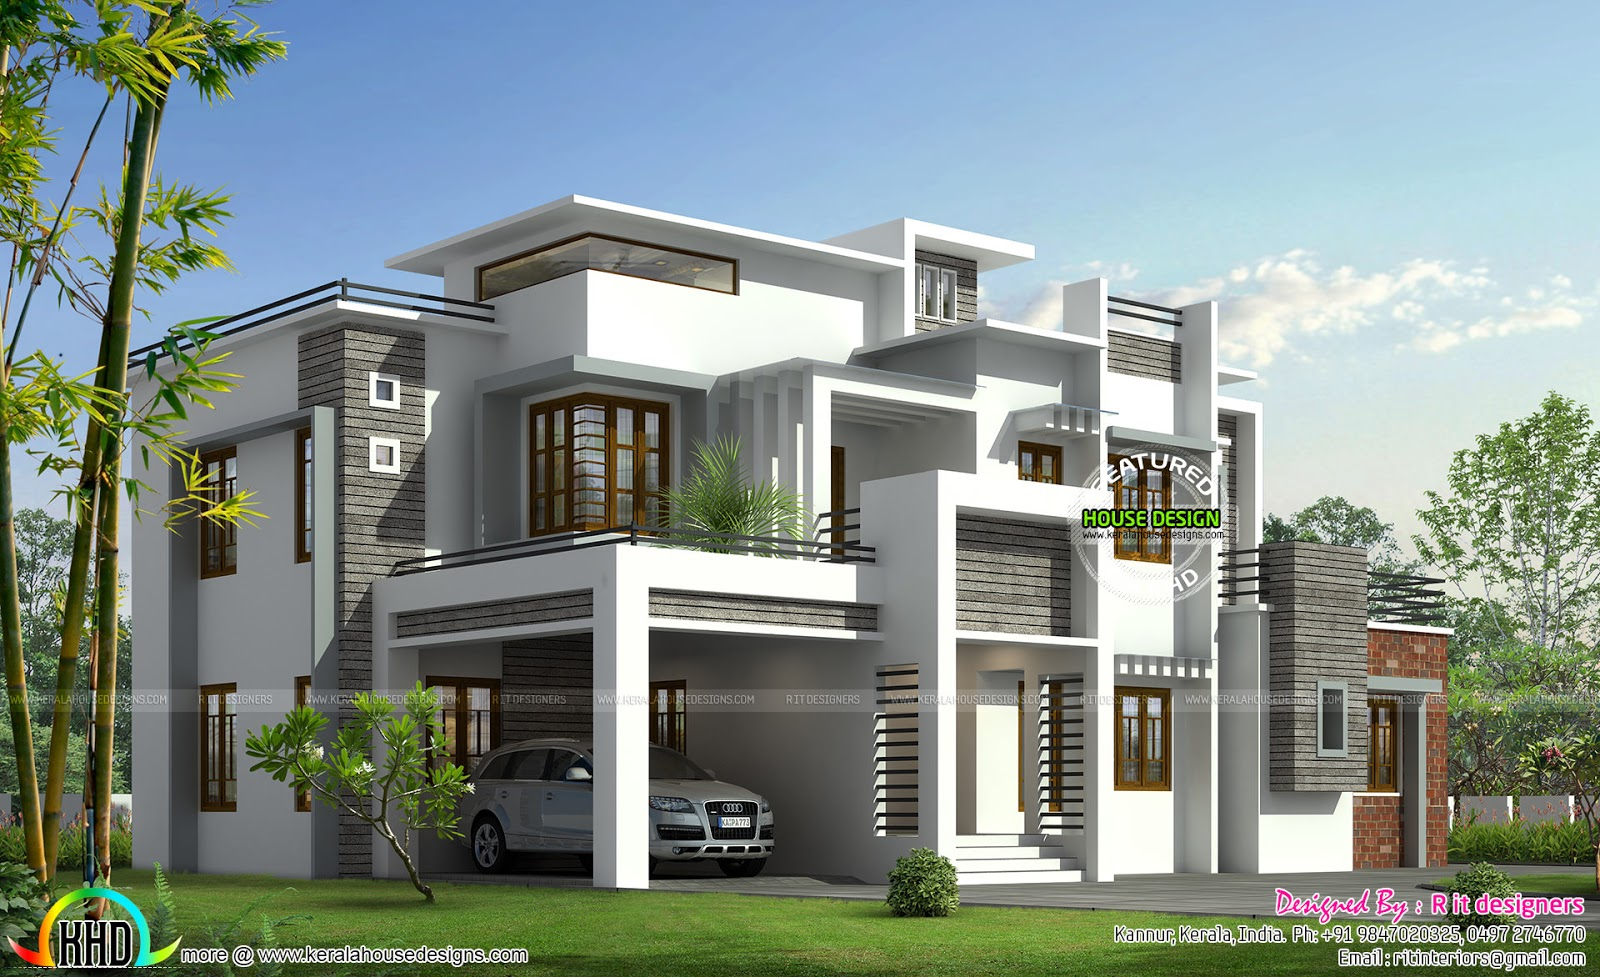 Box model contemporary house kerala home design and for Modern house plans 2016